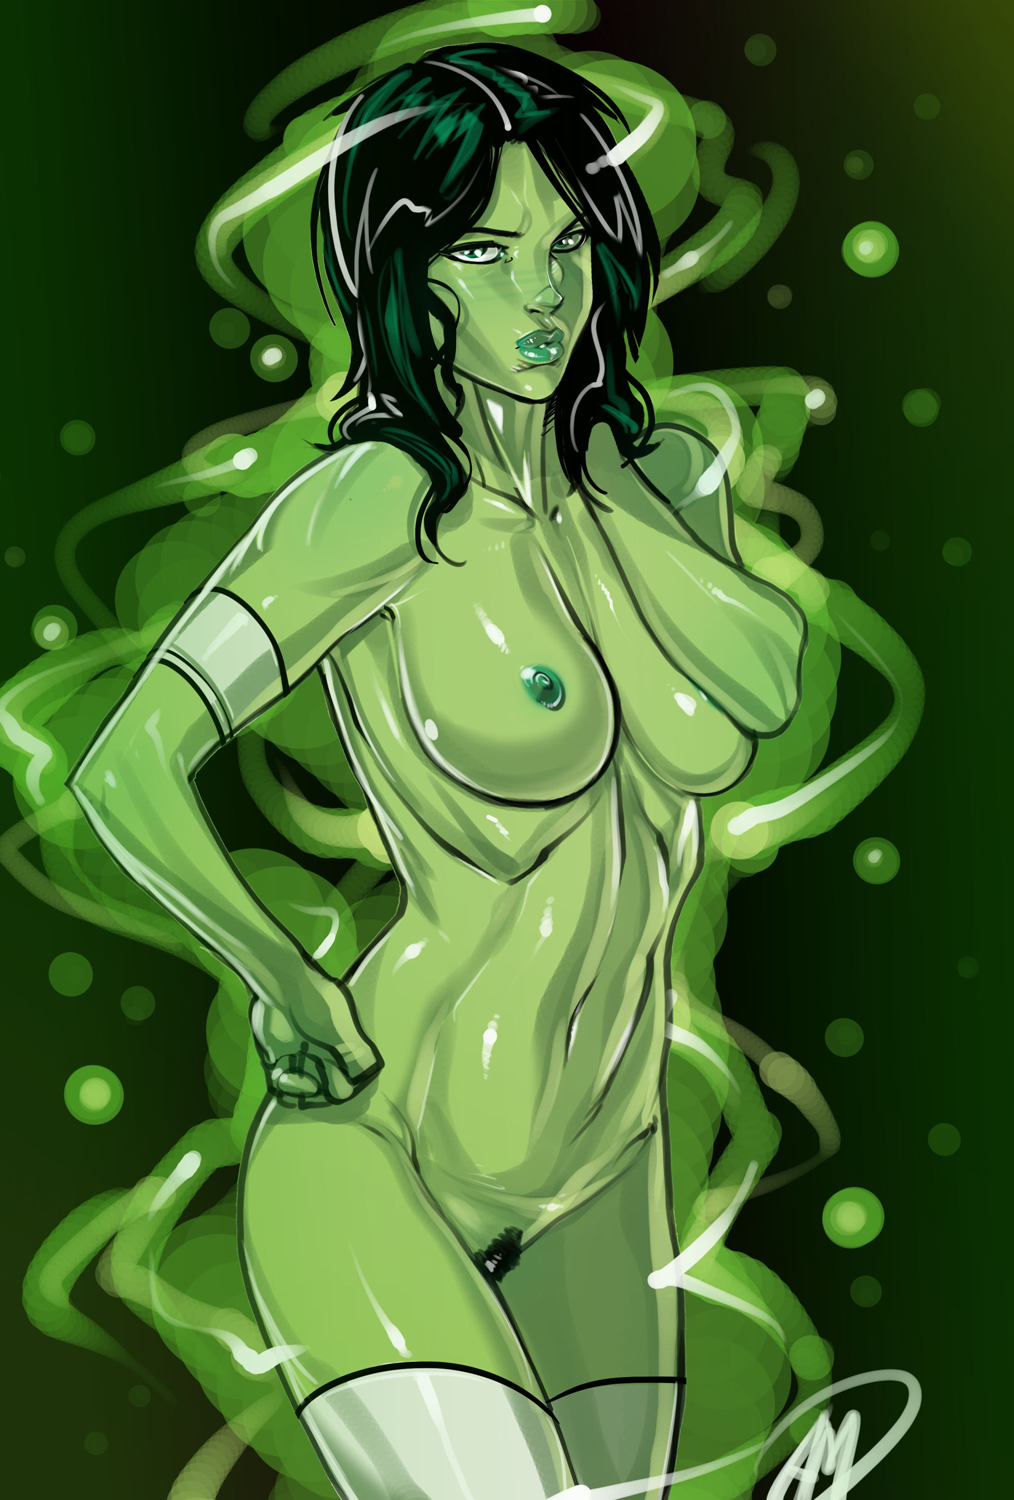 green torrent animated lantern series the Cum shot on tits gifs